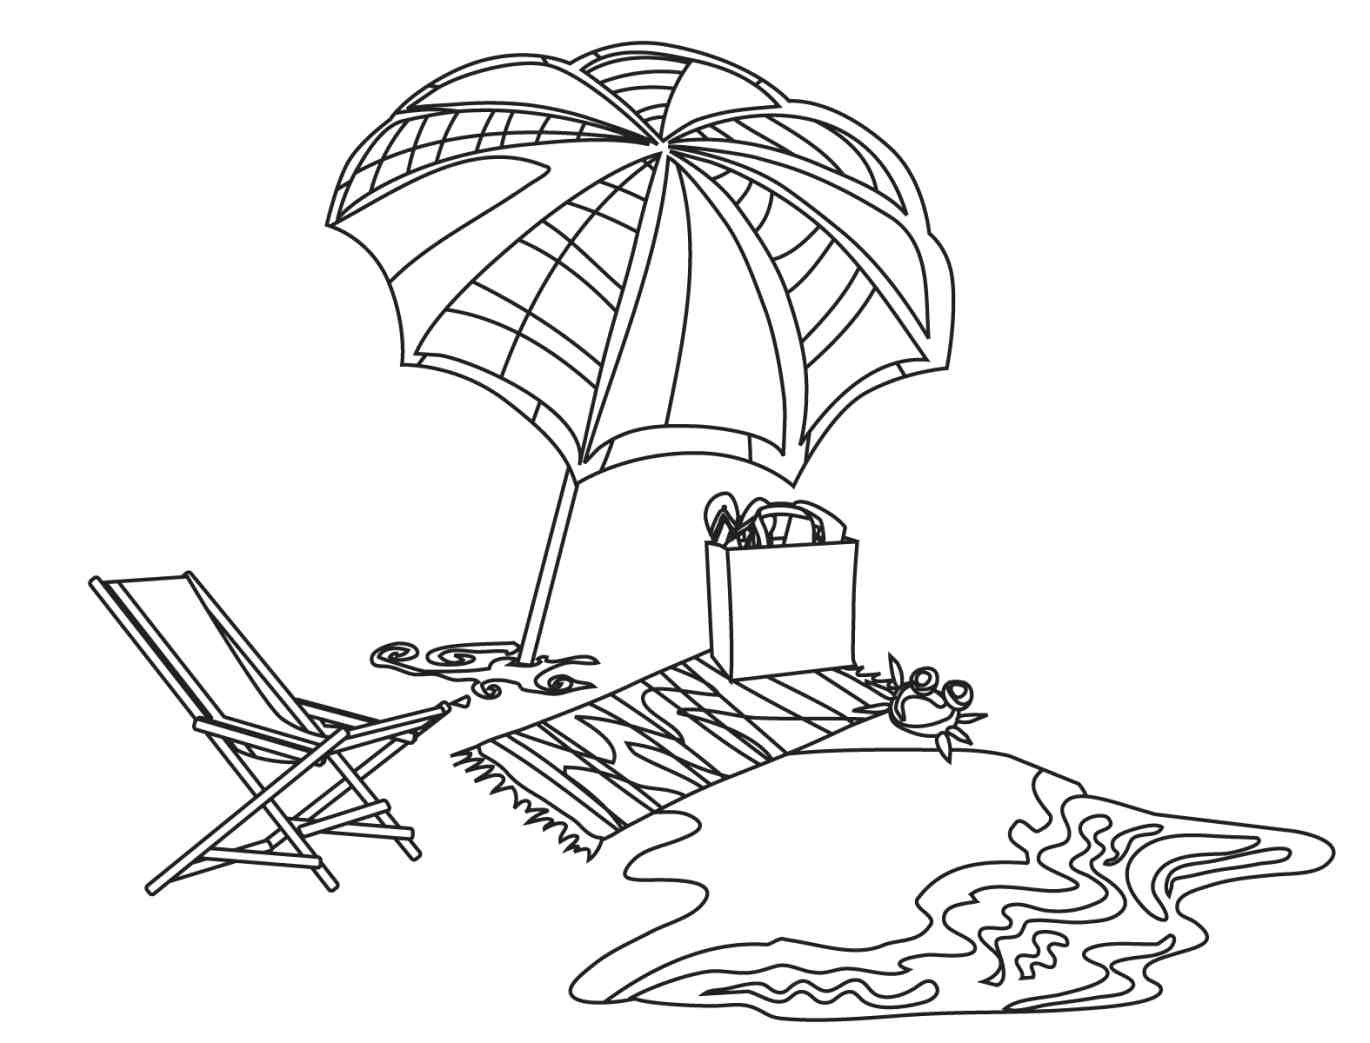 beach colouring page coloring pages 25 free printable beach coloring pages pages beach coloring page colouring